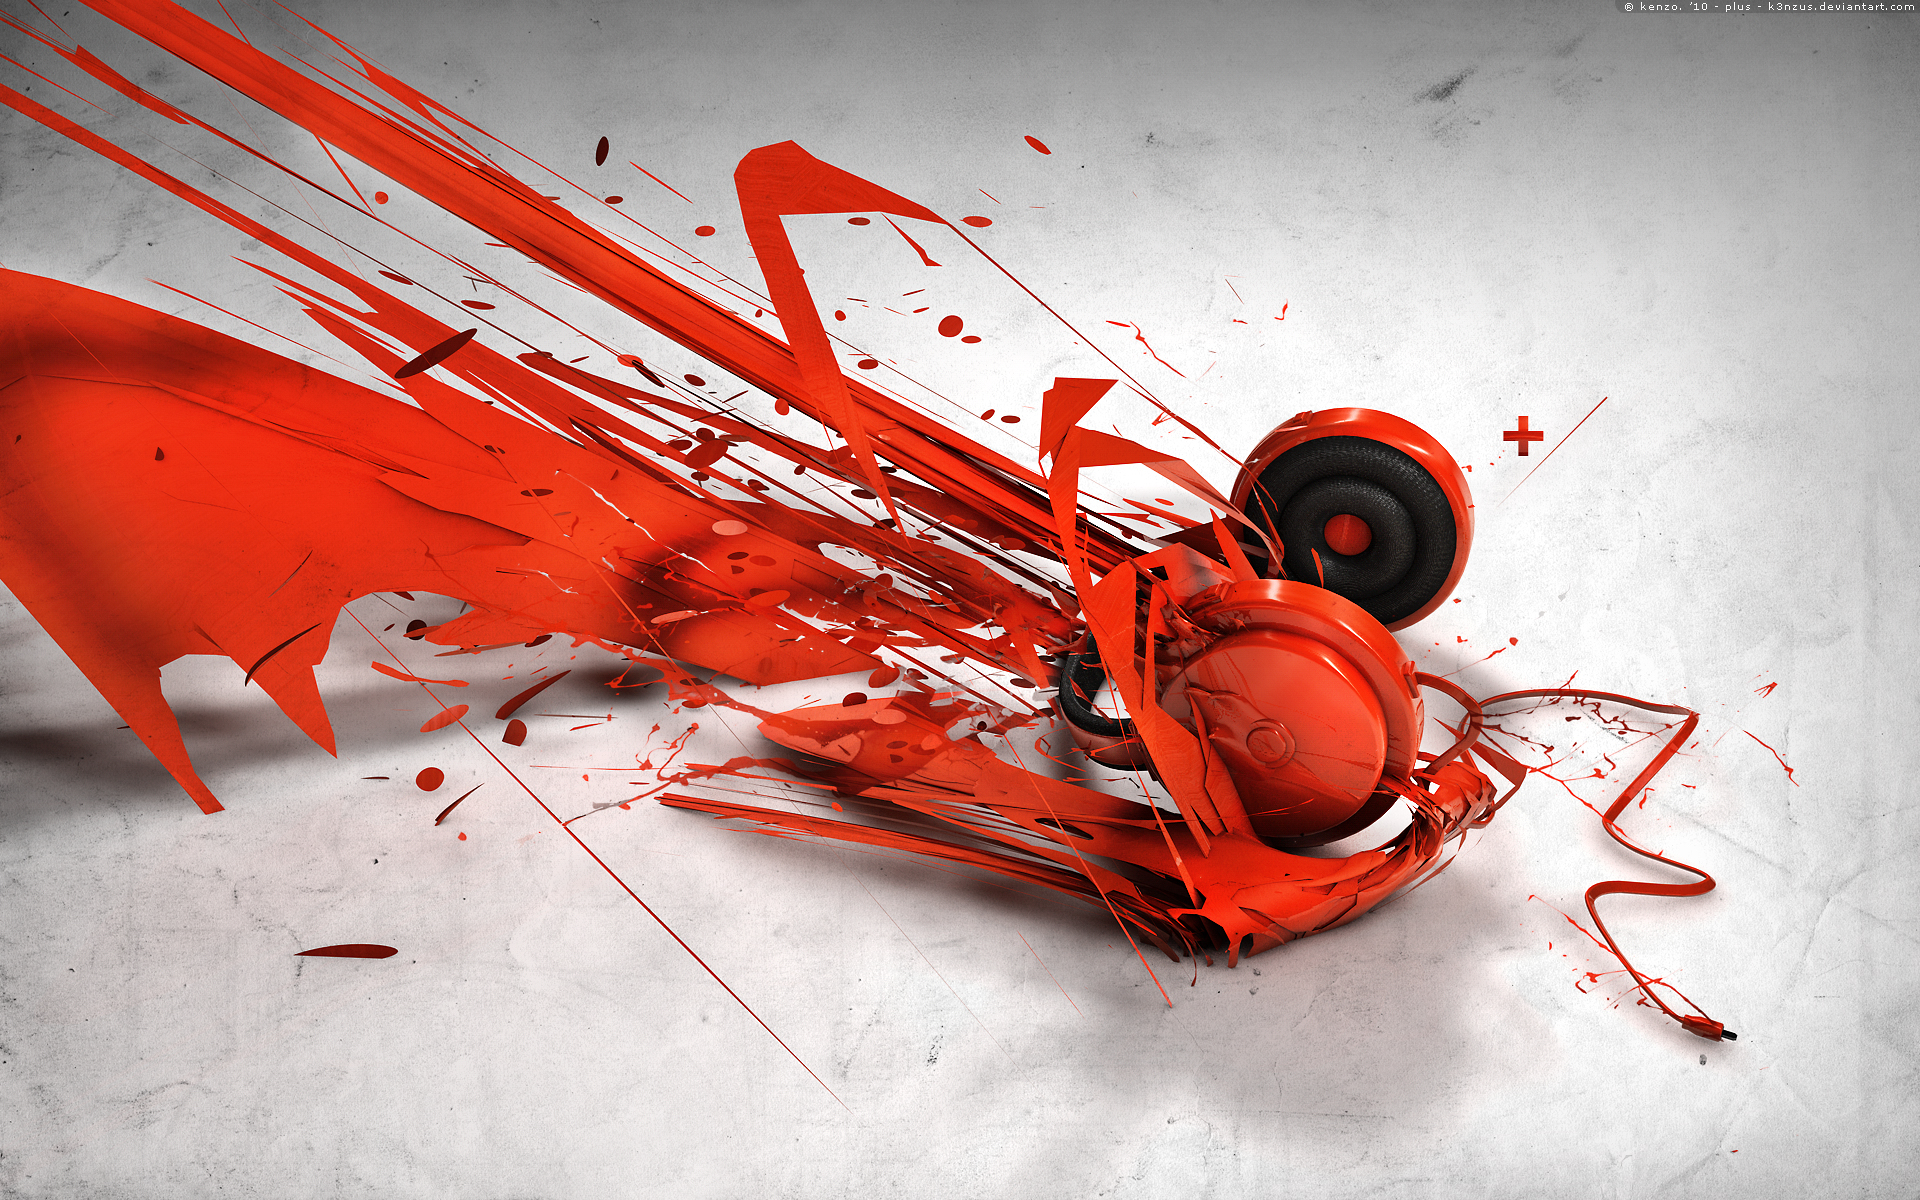 Amazing Wallpaper Music Cell Phone - 1454185180-abstract-music-headphones-file  Gallery_386018.jpg